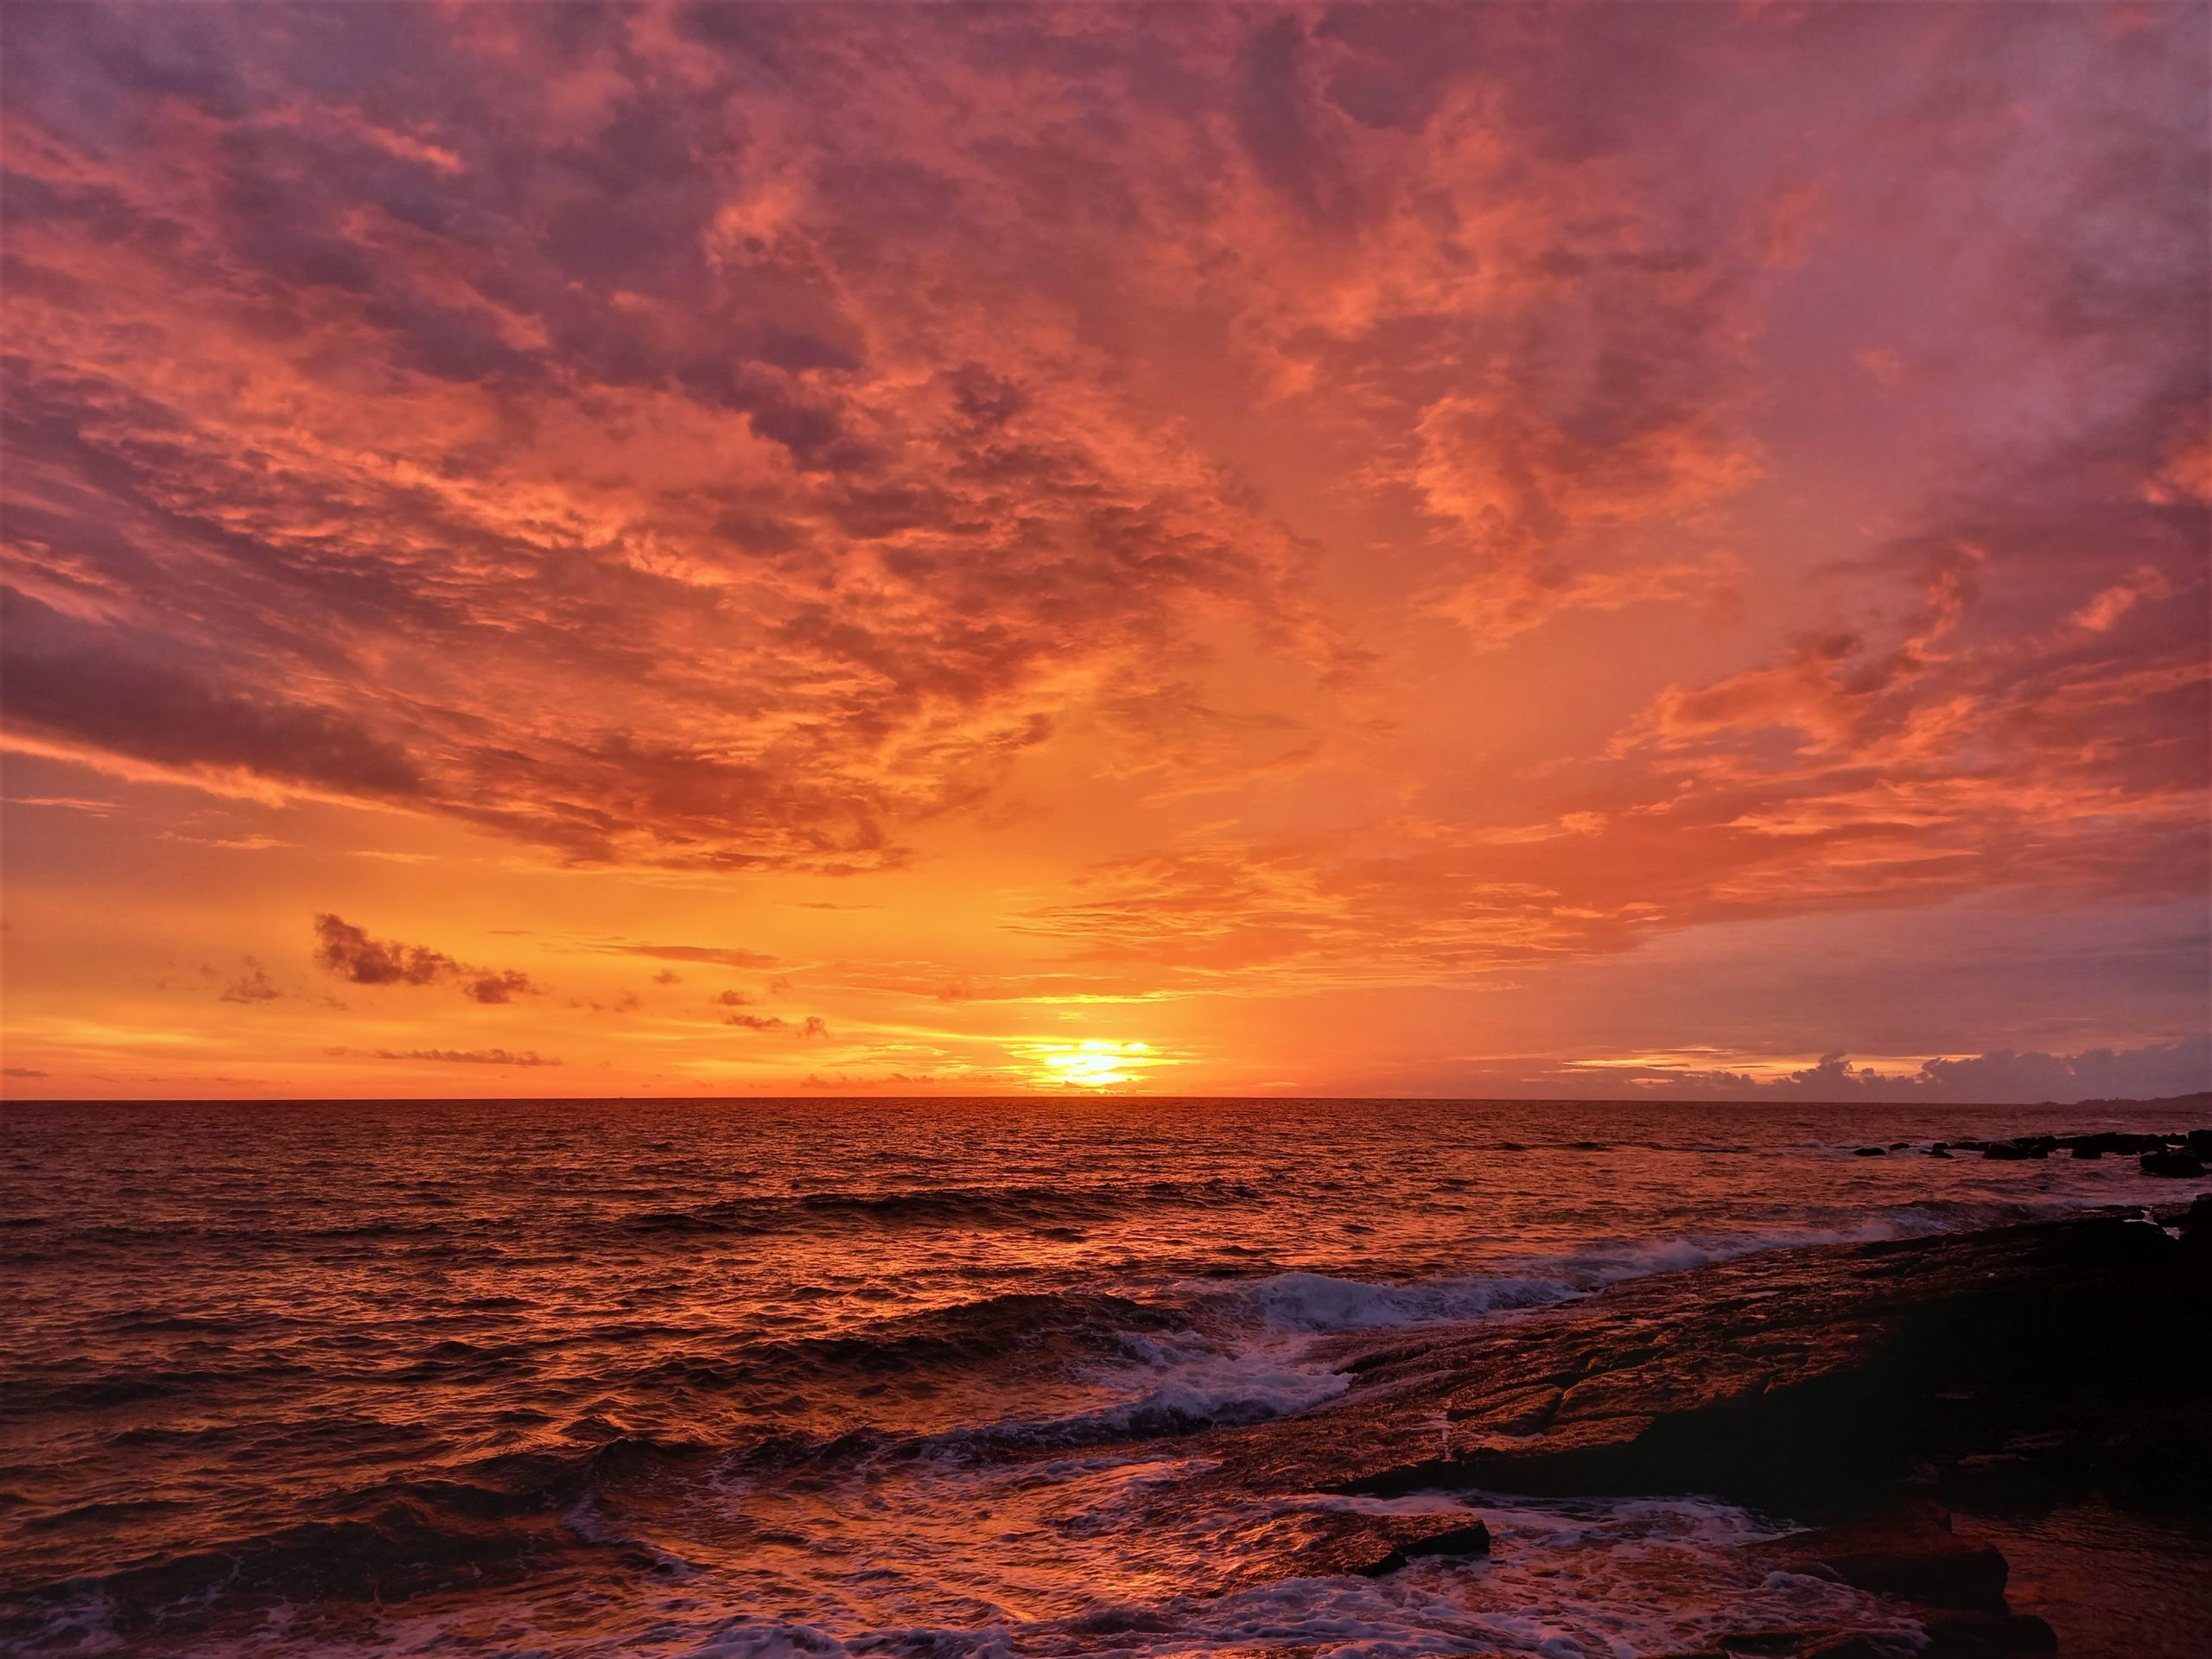 Ode to the Ocean, Sunset over the sea, Phu Quoc Island, Vietnam